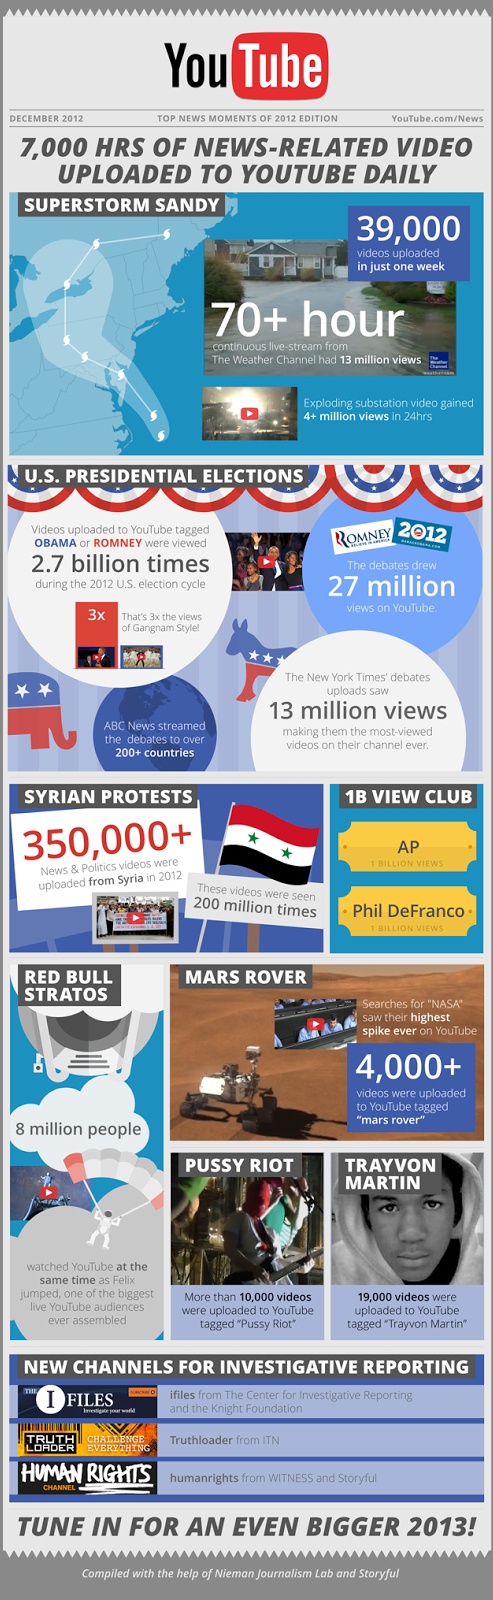 youtube_infographic_nieuws